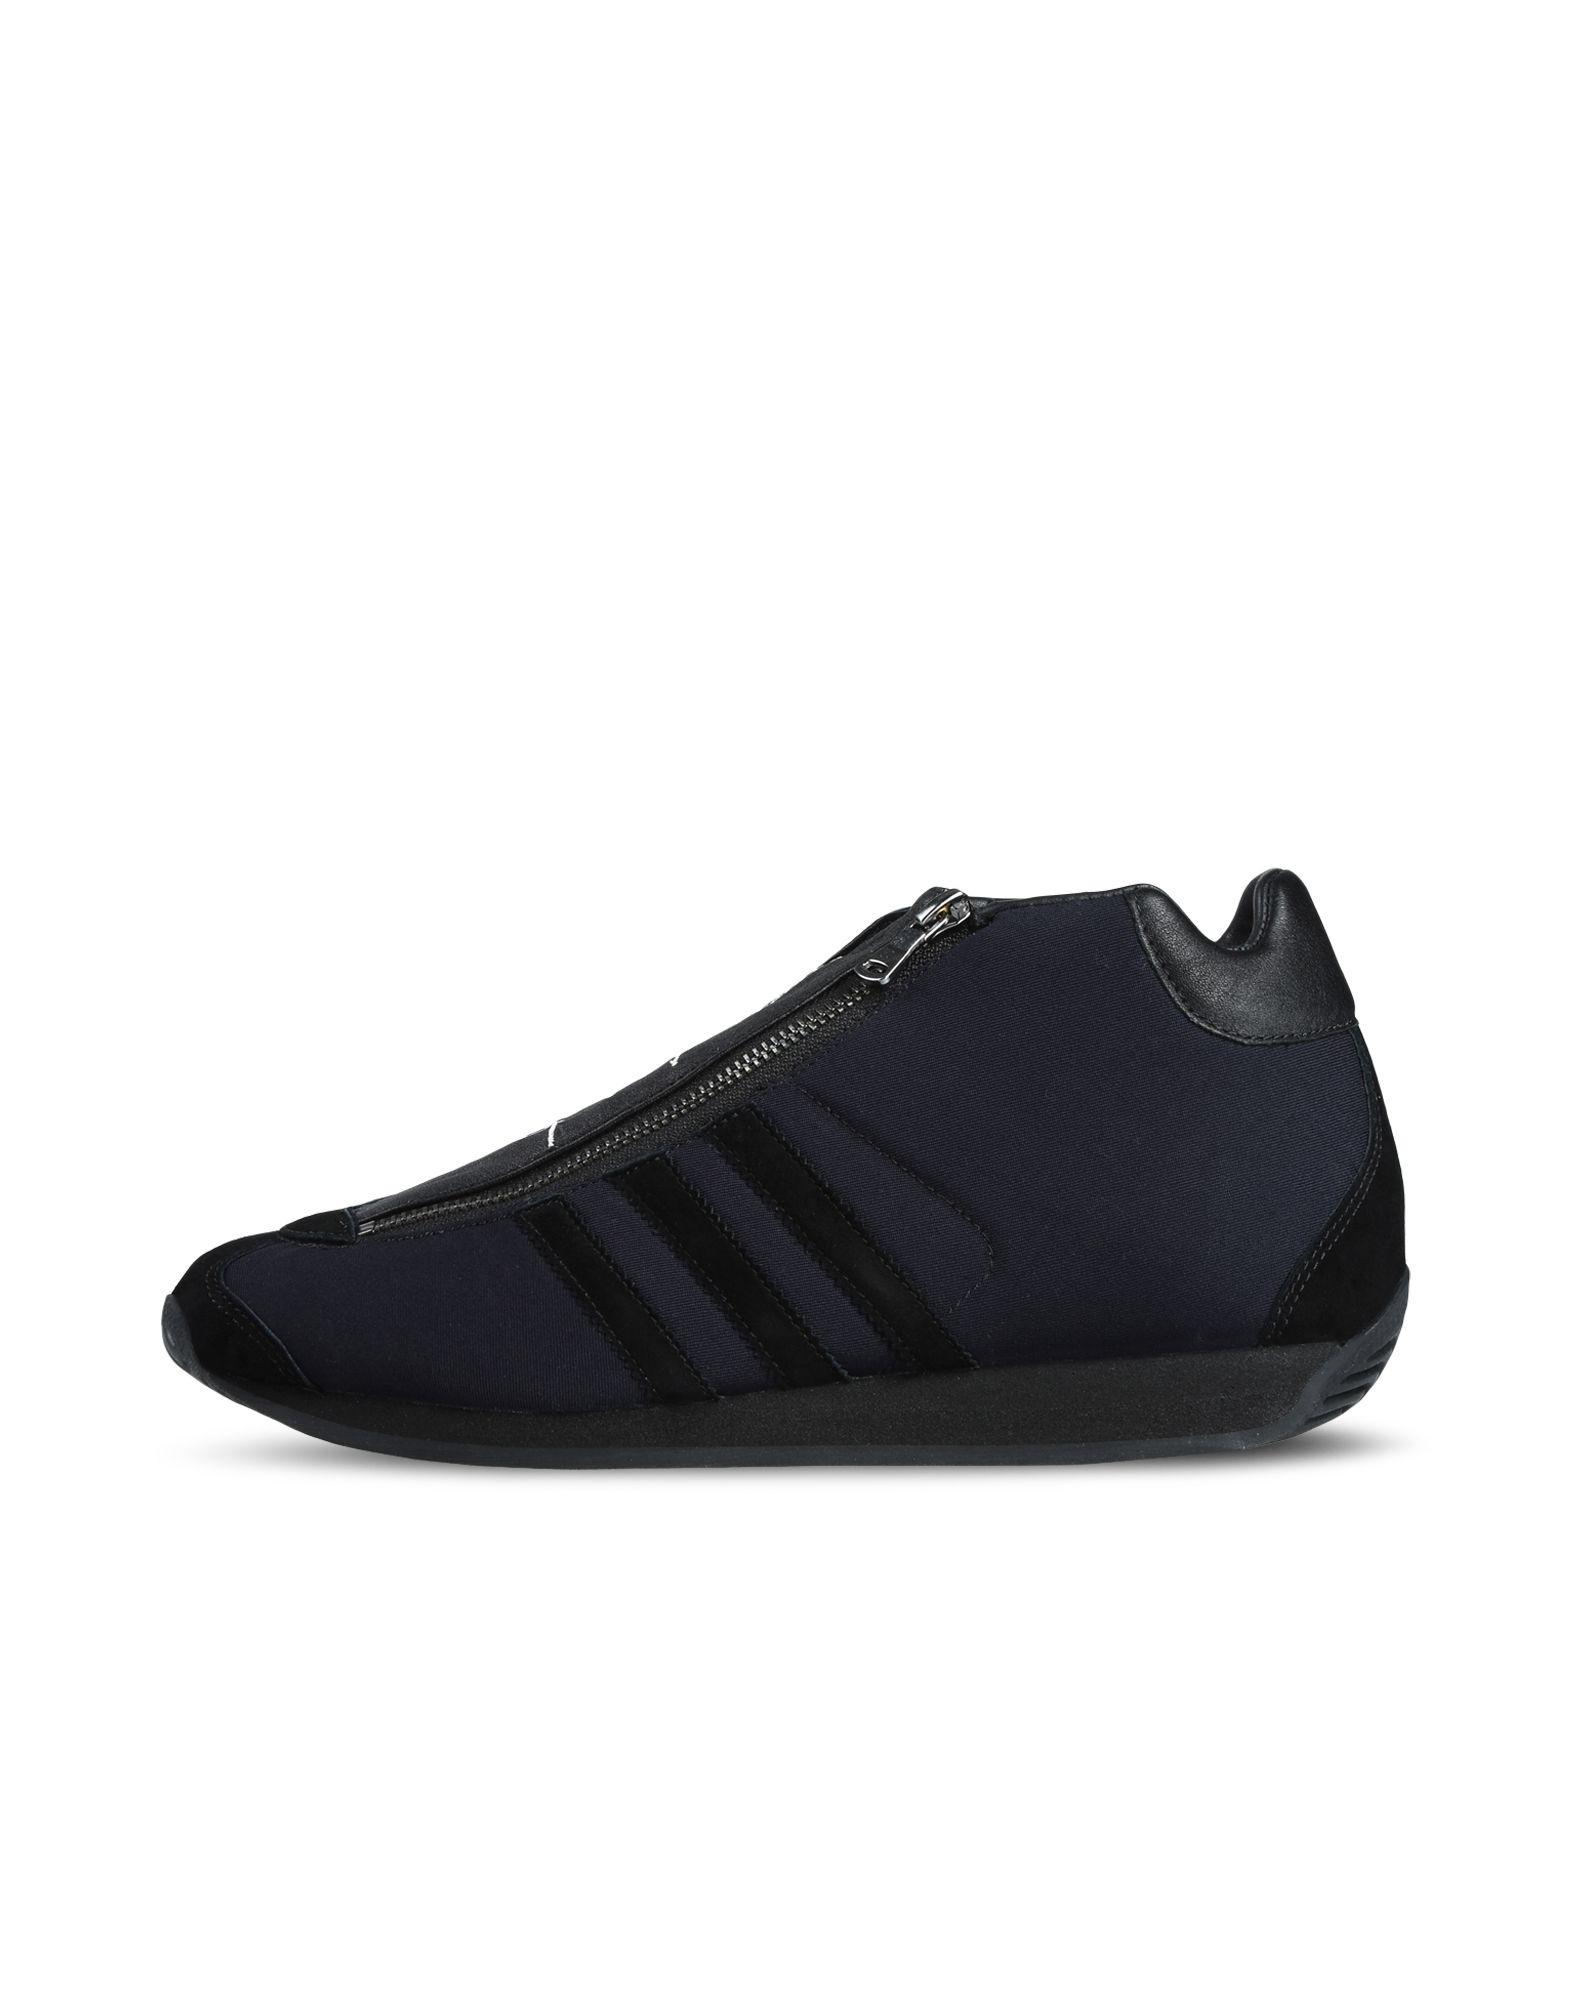 sneakers adidas x yy country zip mid for women online official store. Black Bedroom Furniture Sets. Home Design Ideas